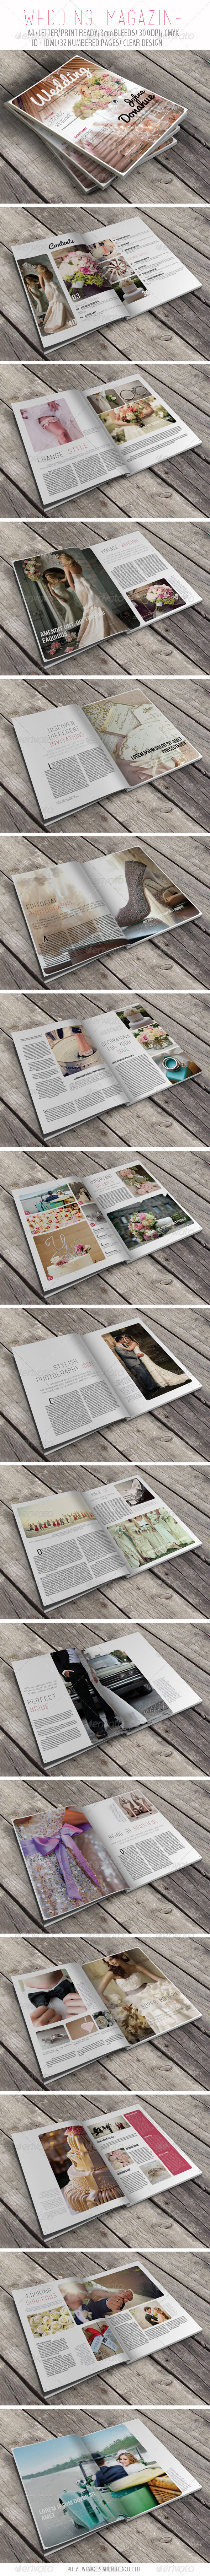 Wedding Magazine - Magazines Print Templates